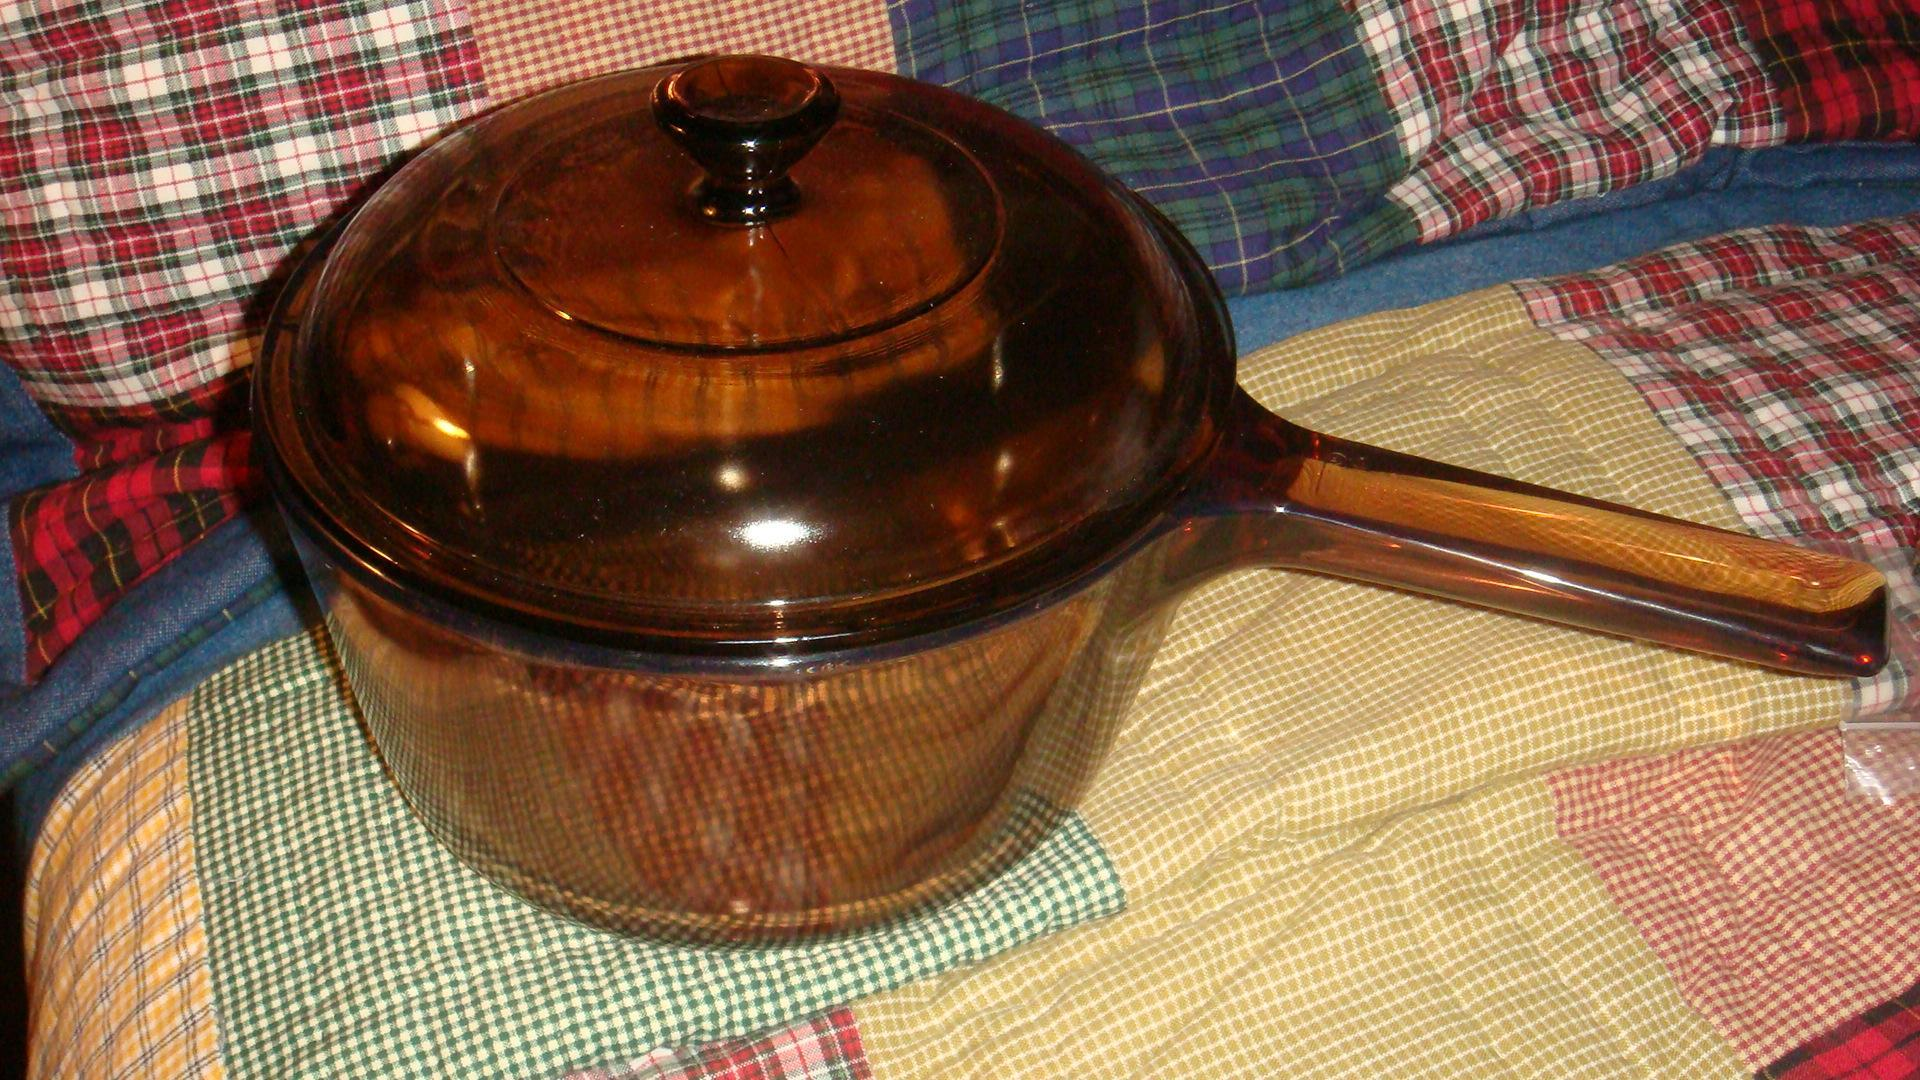 Corning Ware Pyrex Visions Cookware Saucepan With Lid 1.5